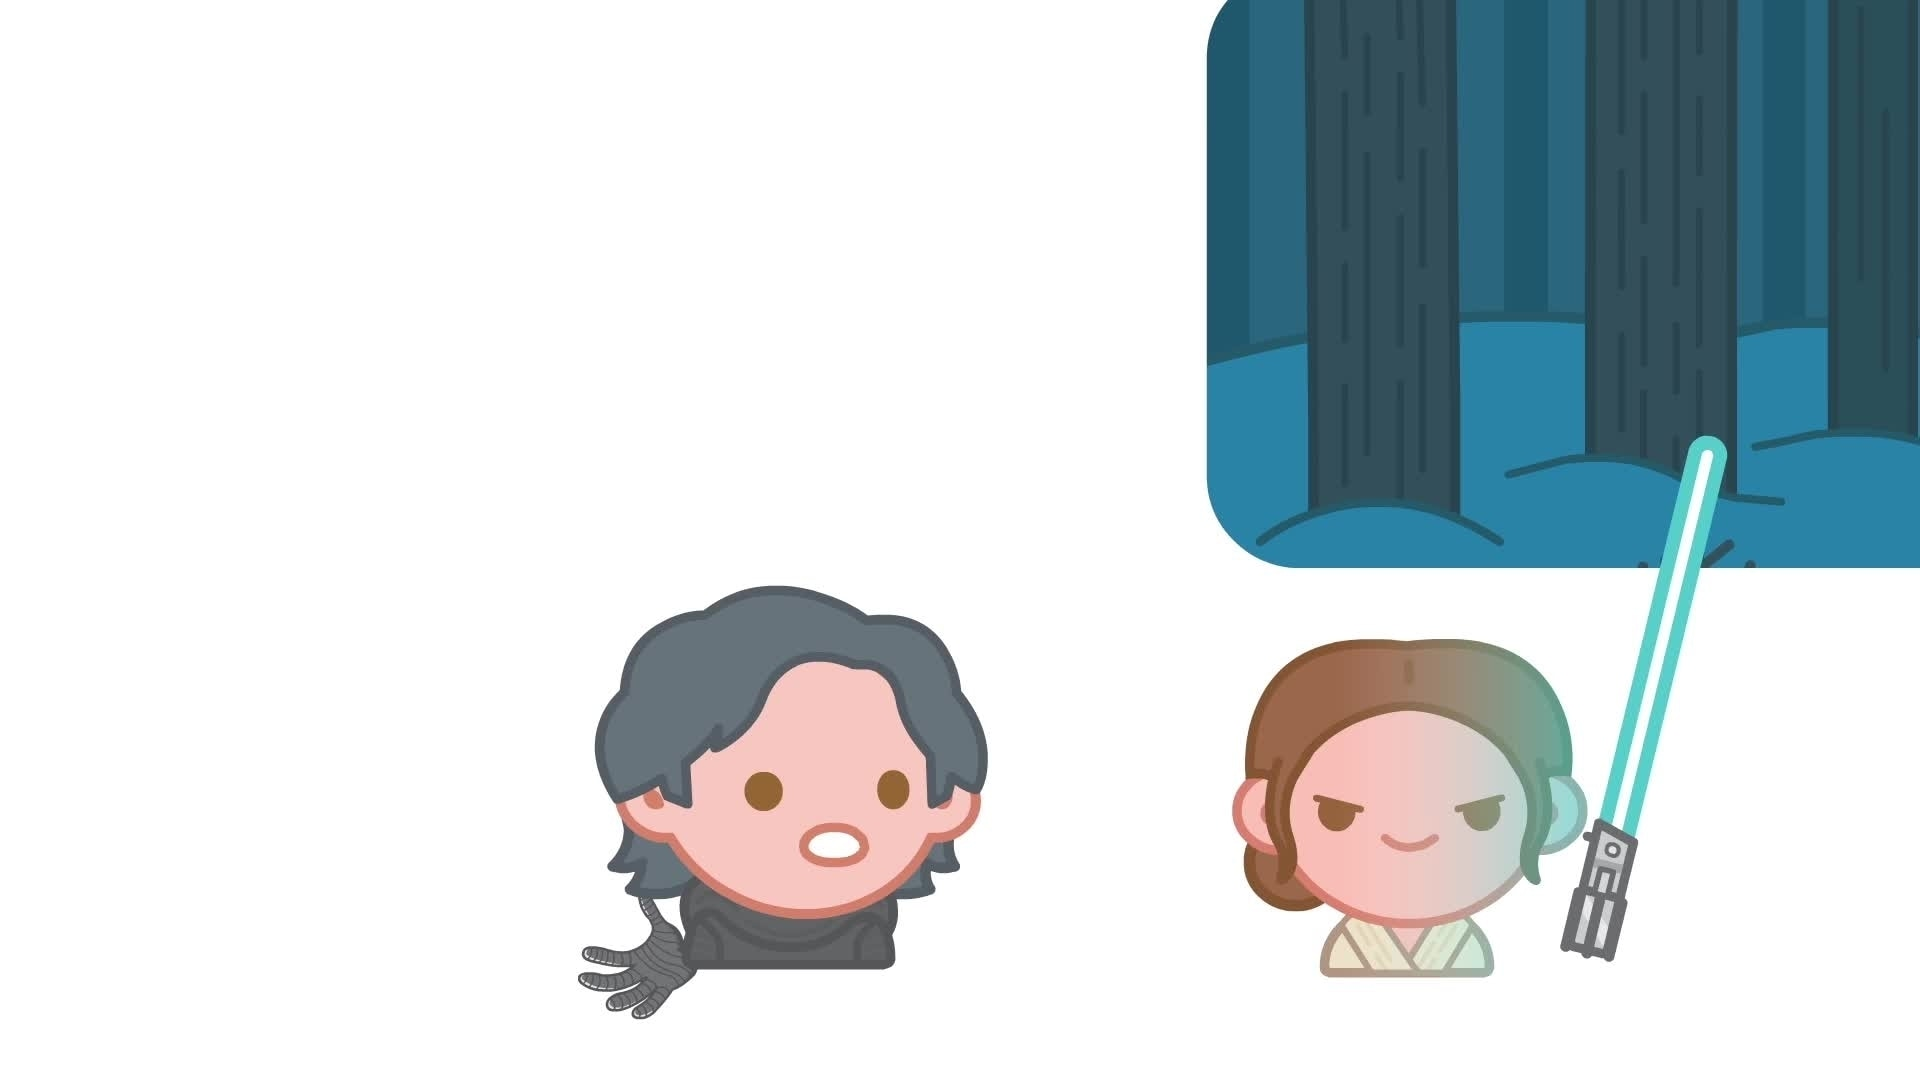 Fortalt med Emoji: The Force Awakens